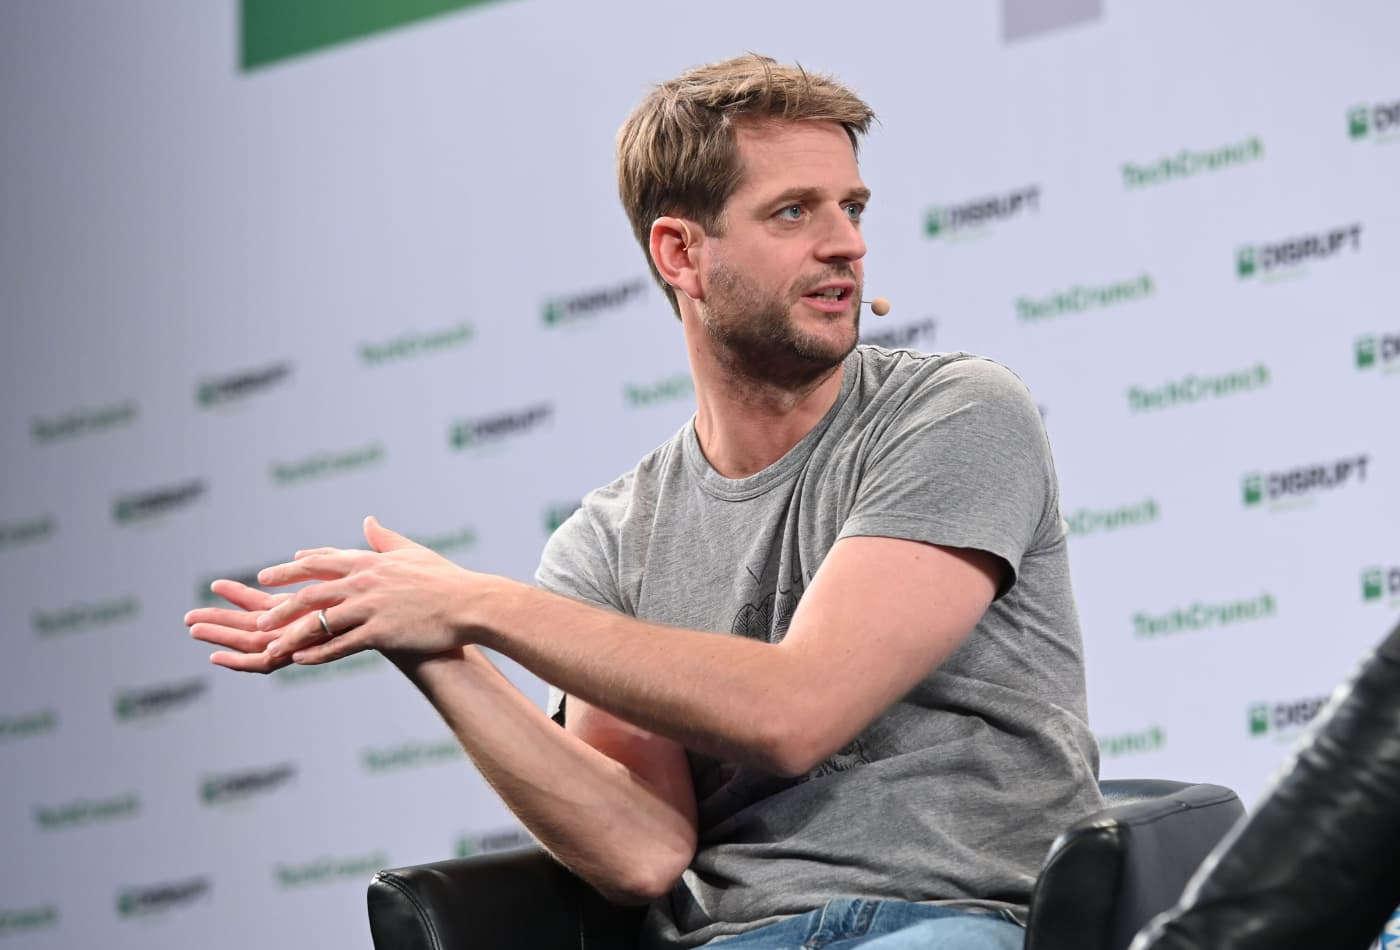 Klarna CEO says market volatility has him 'nervous' about an IPO